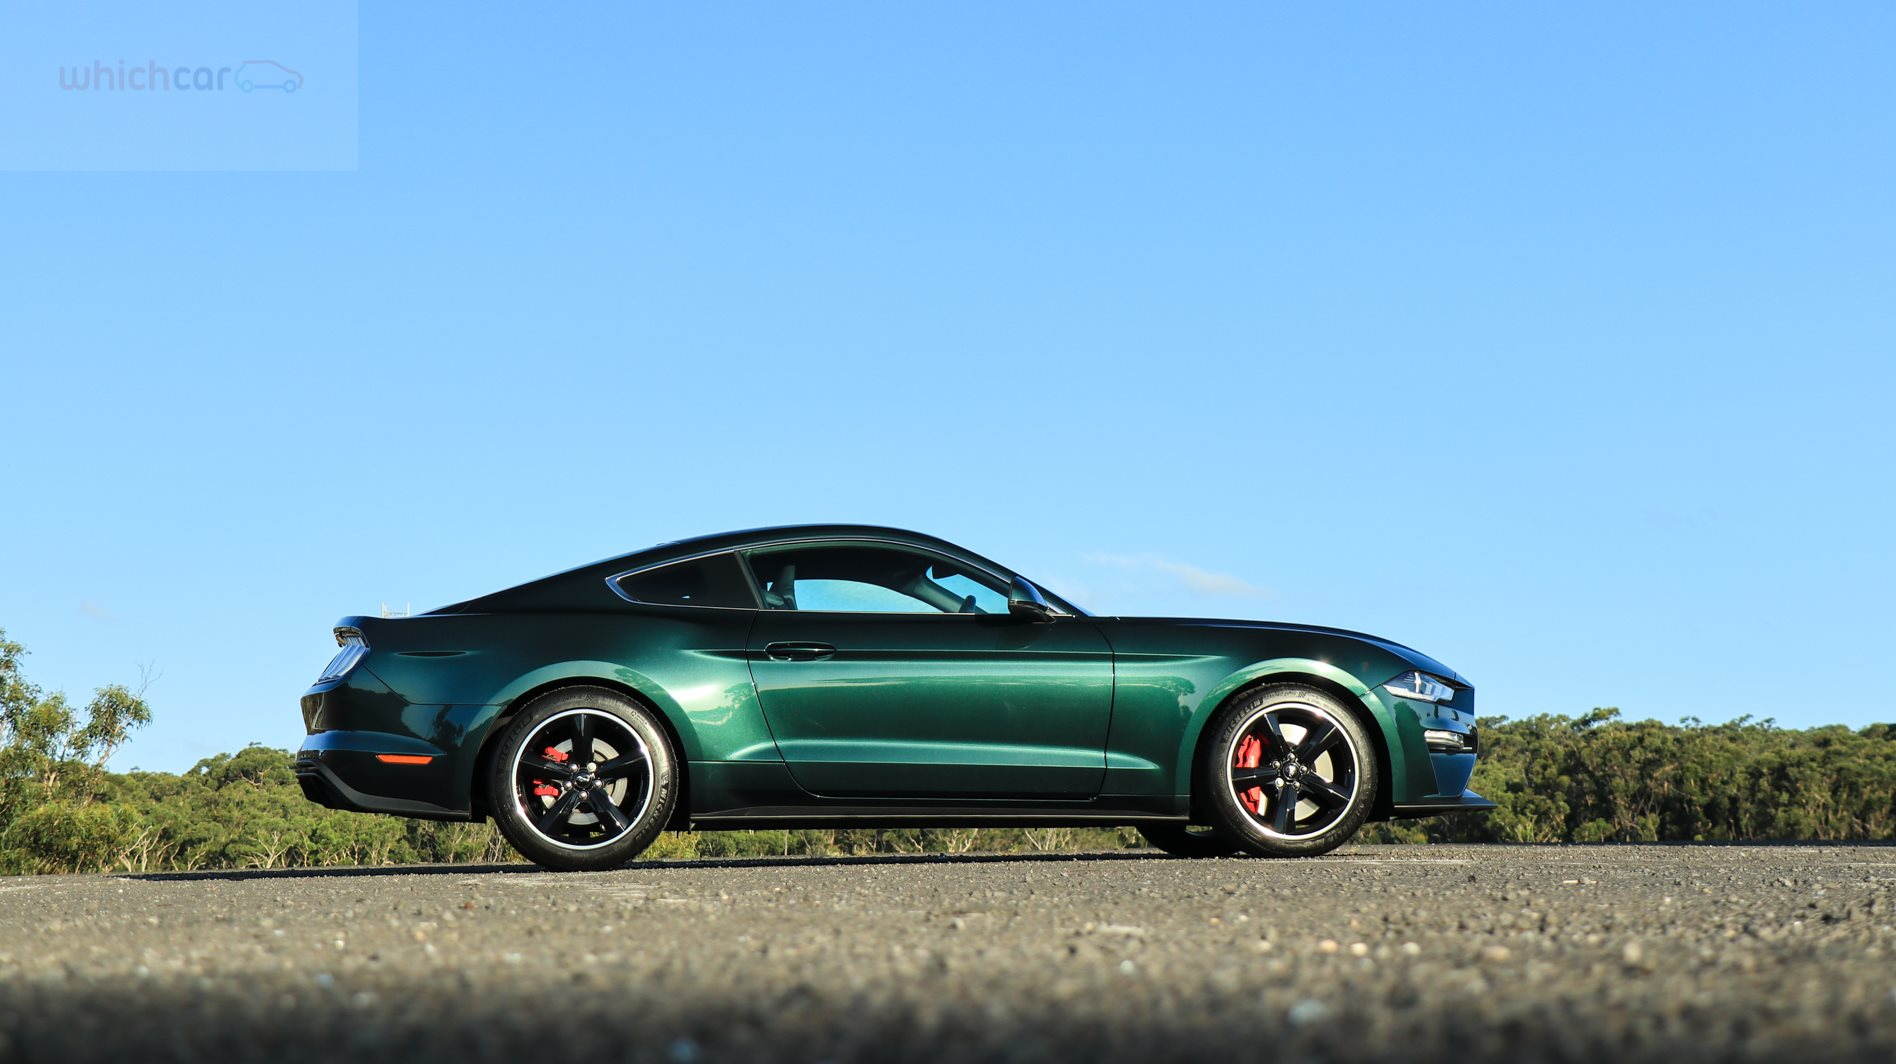 2019 Ford Mustang Sports Car The Bullitt Is Back >> Ford Mustang Bullitt Quick Review